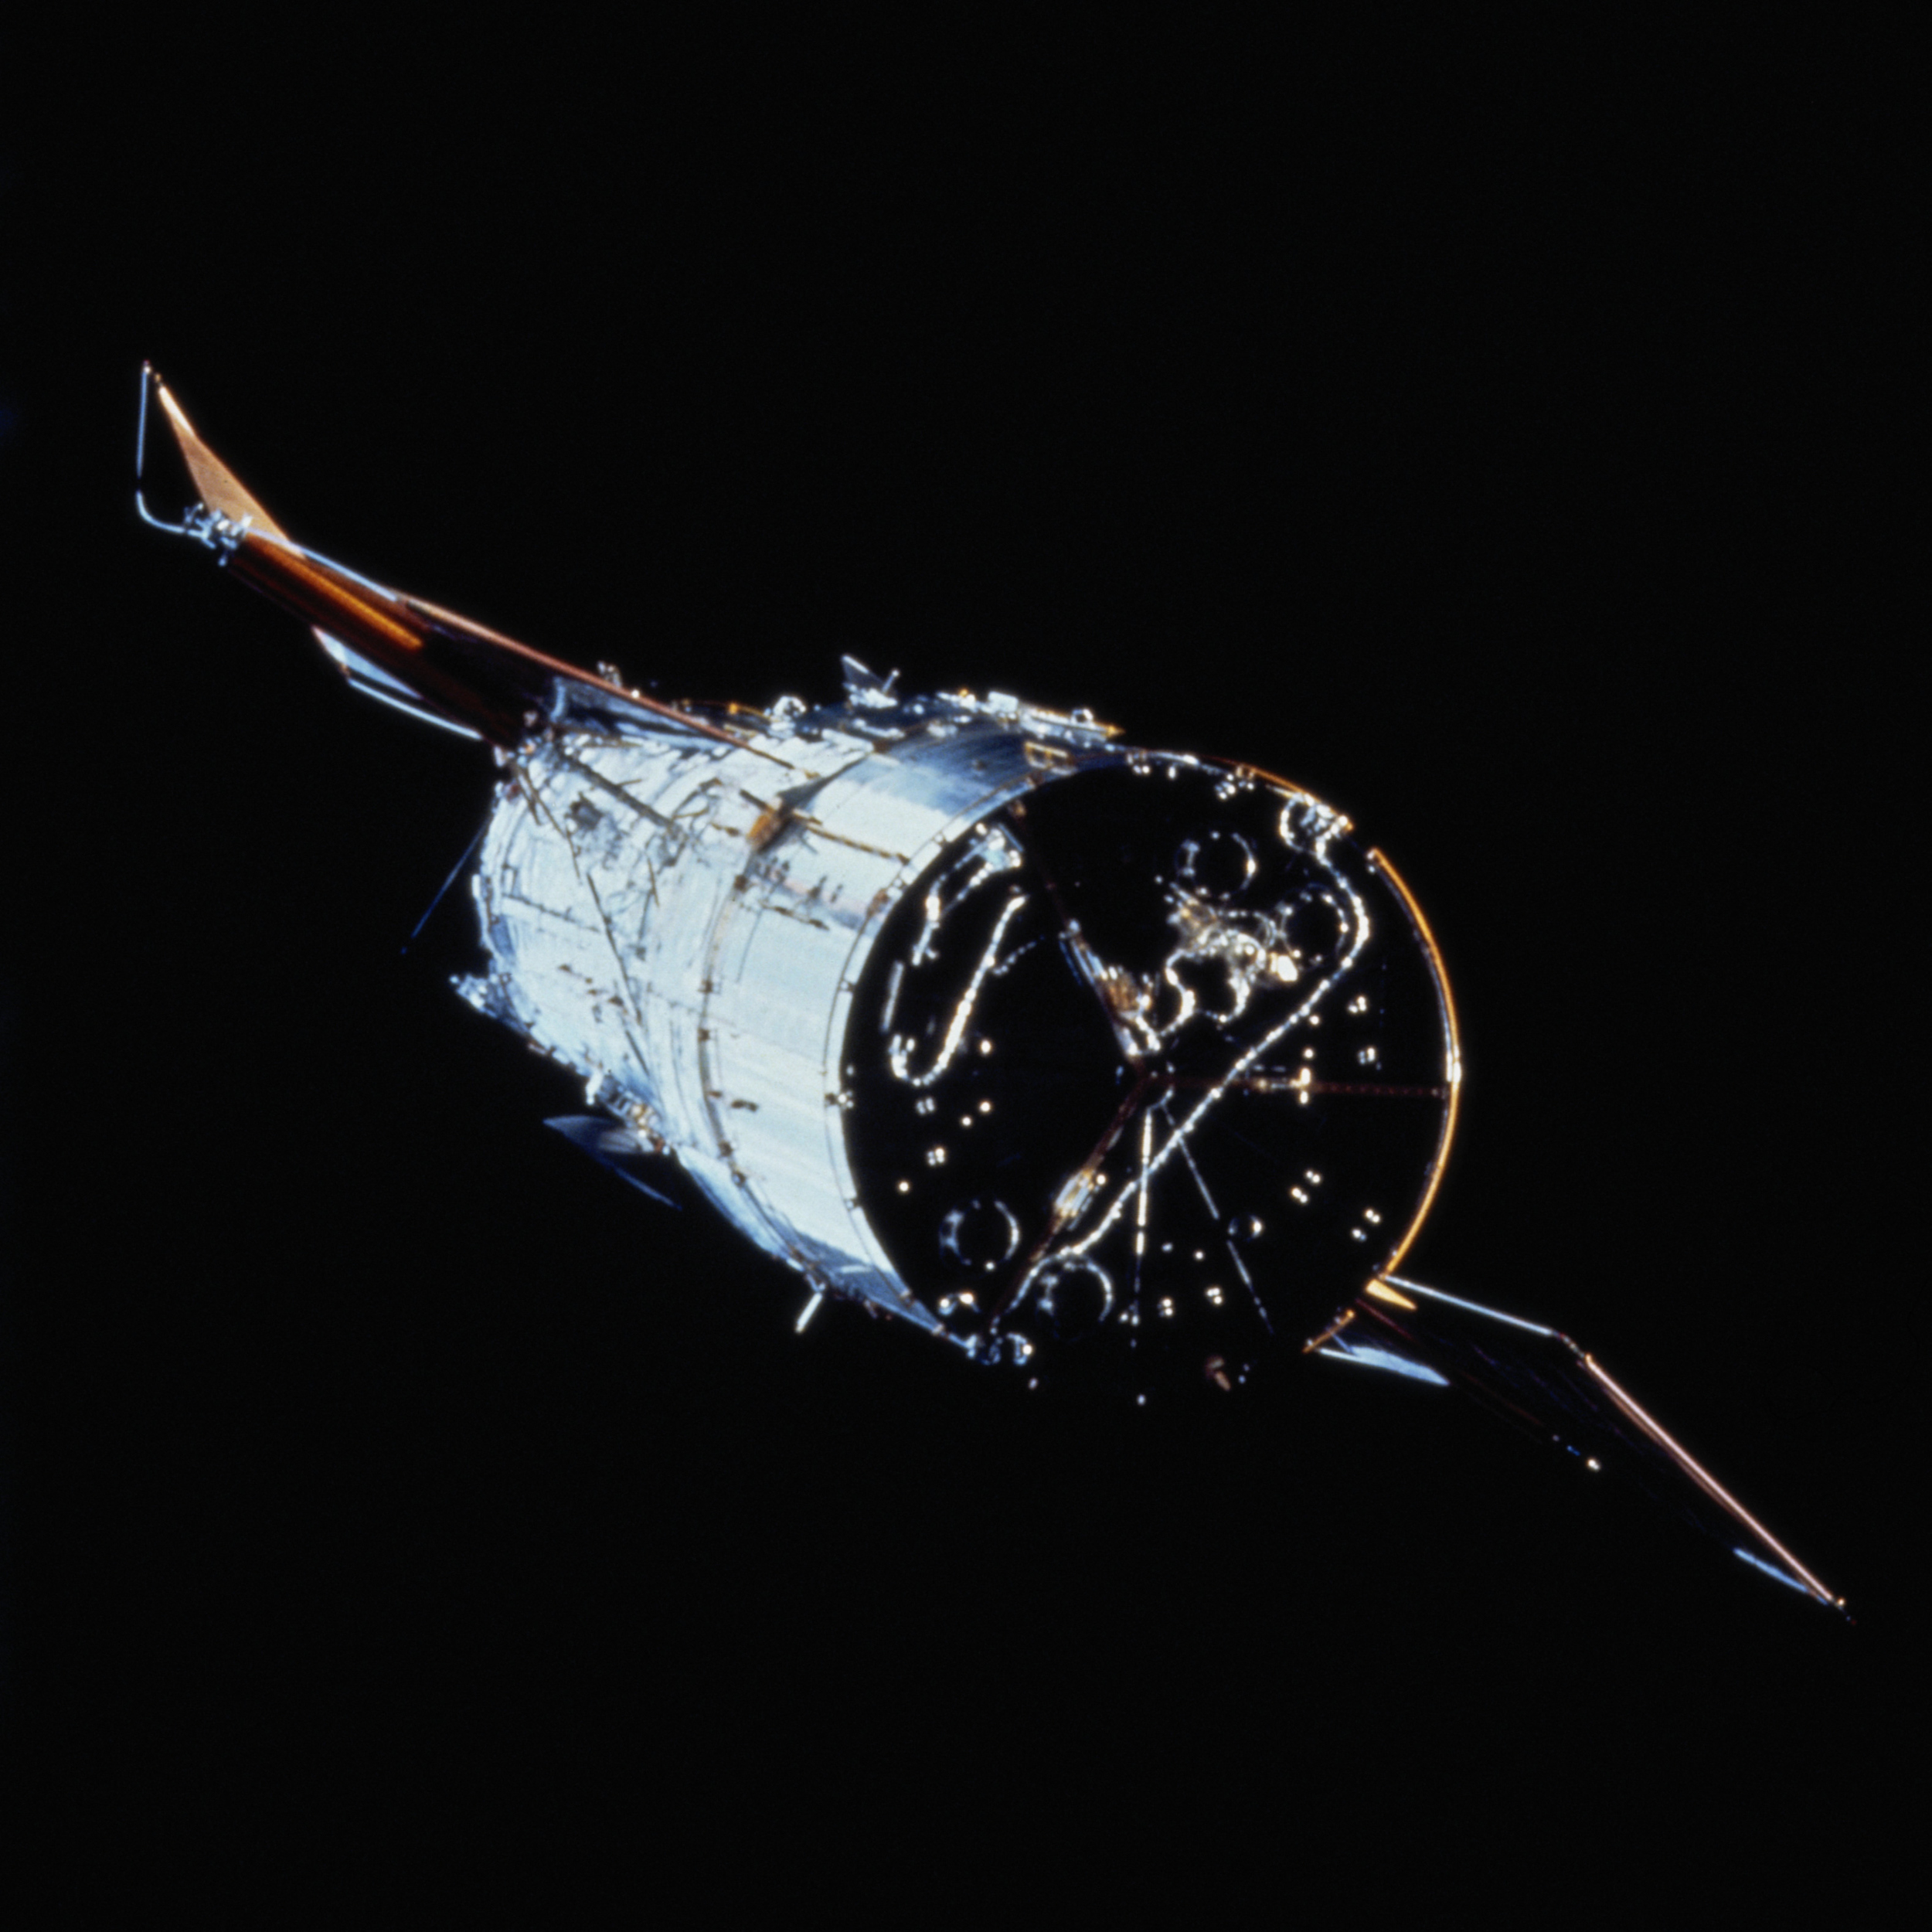 hubble telescope articles - photo #10